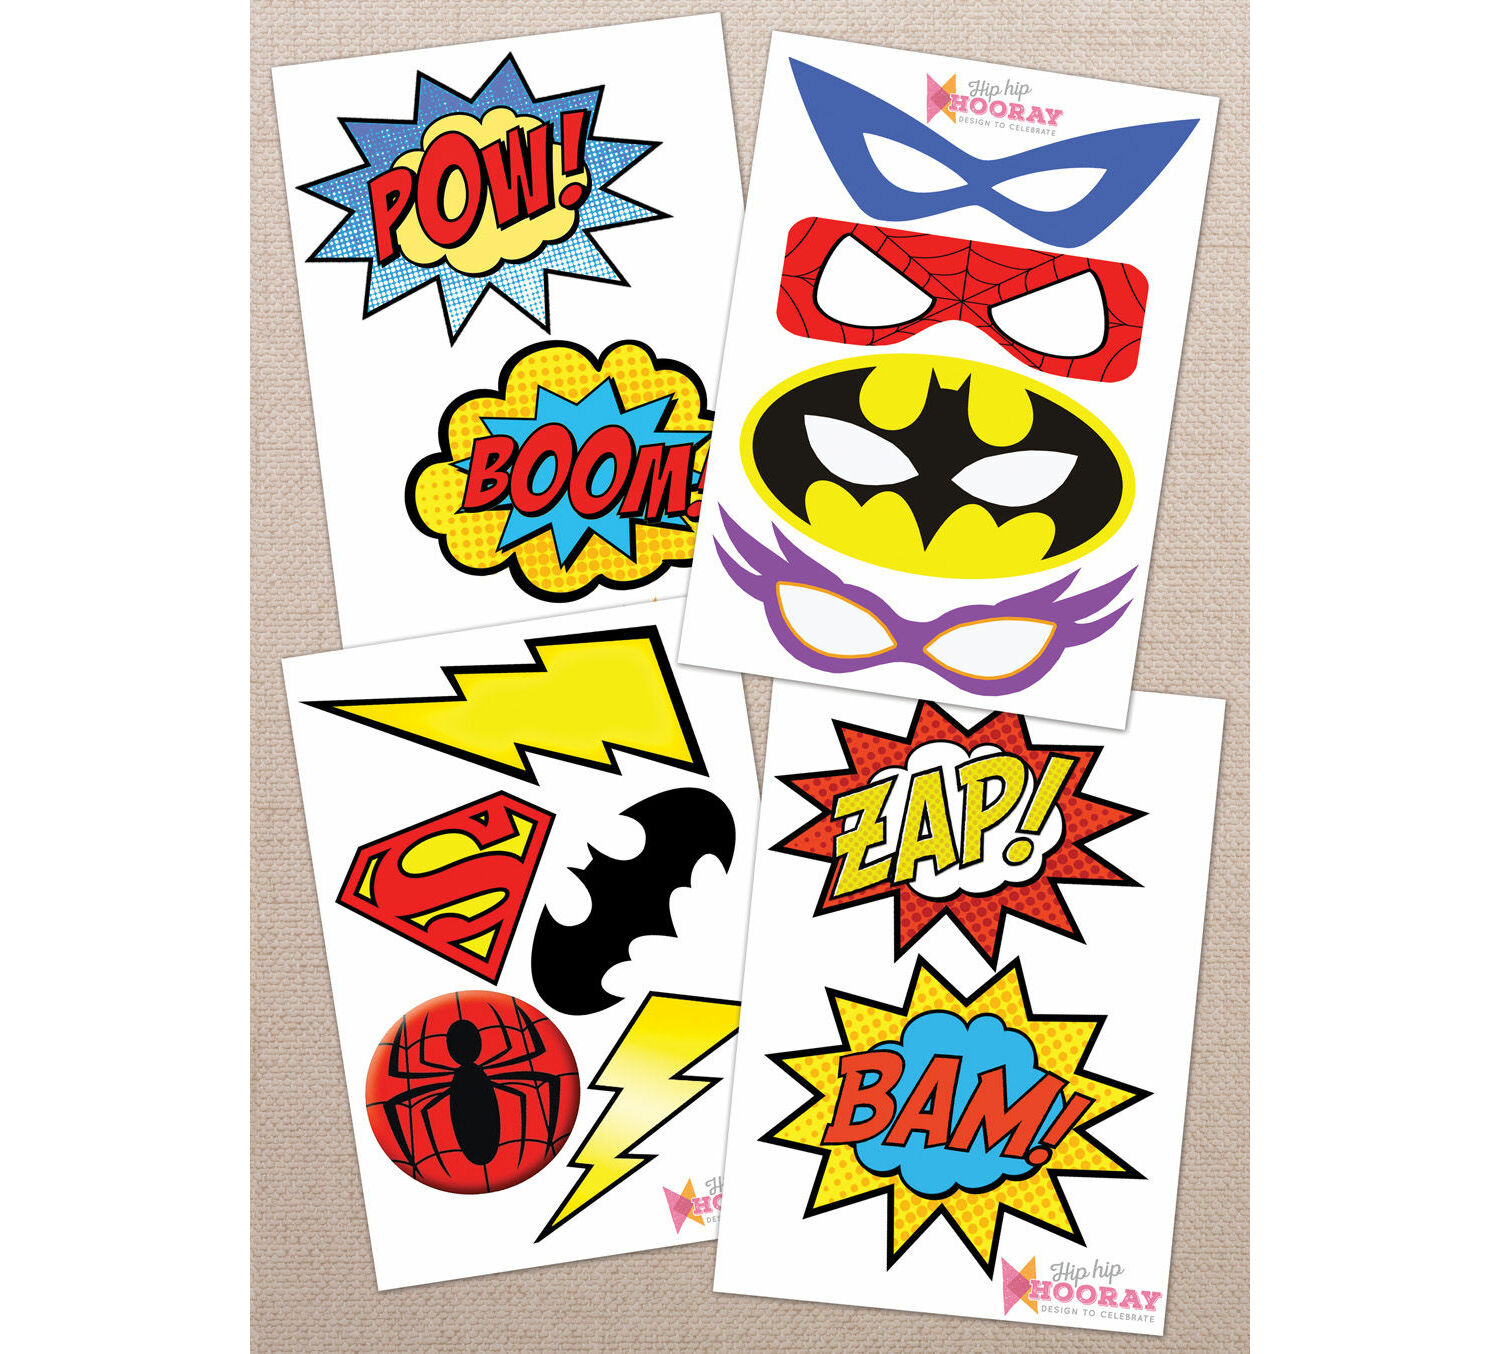 image about Free Printable Superhero Photo Booth Props referred to as Printable Superhero Image Booth Props